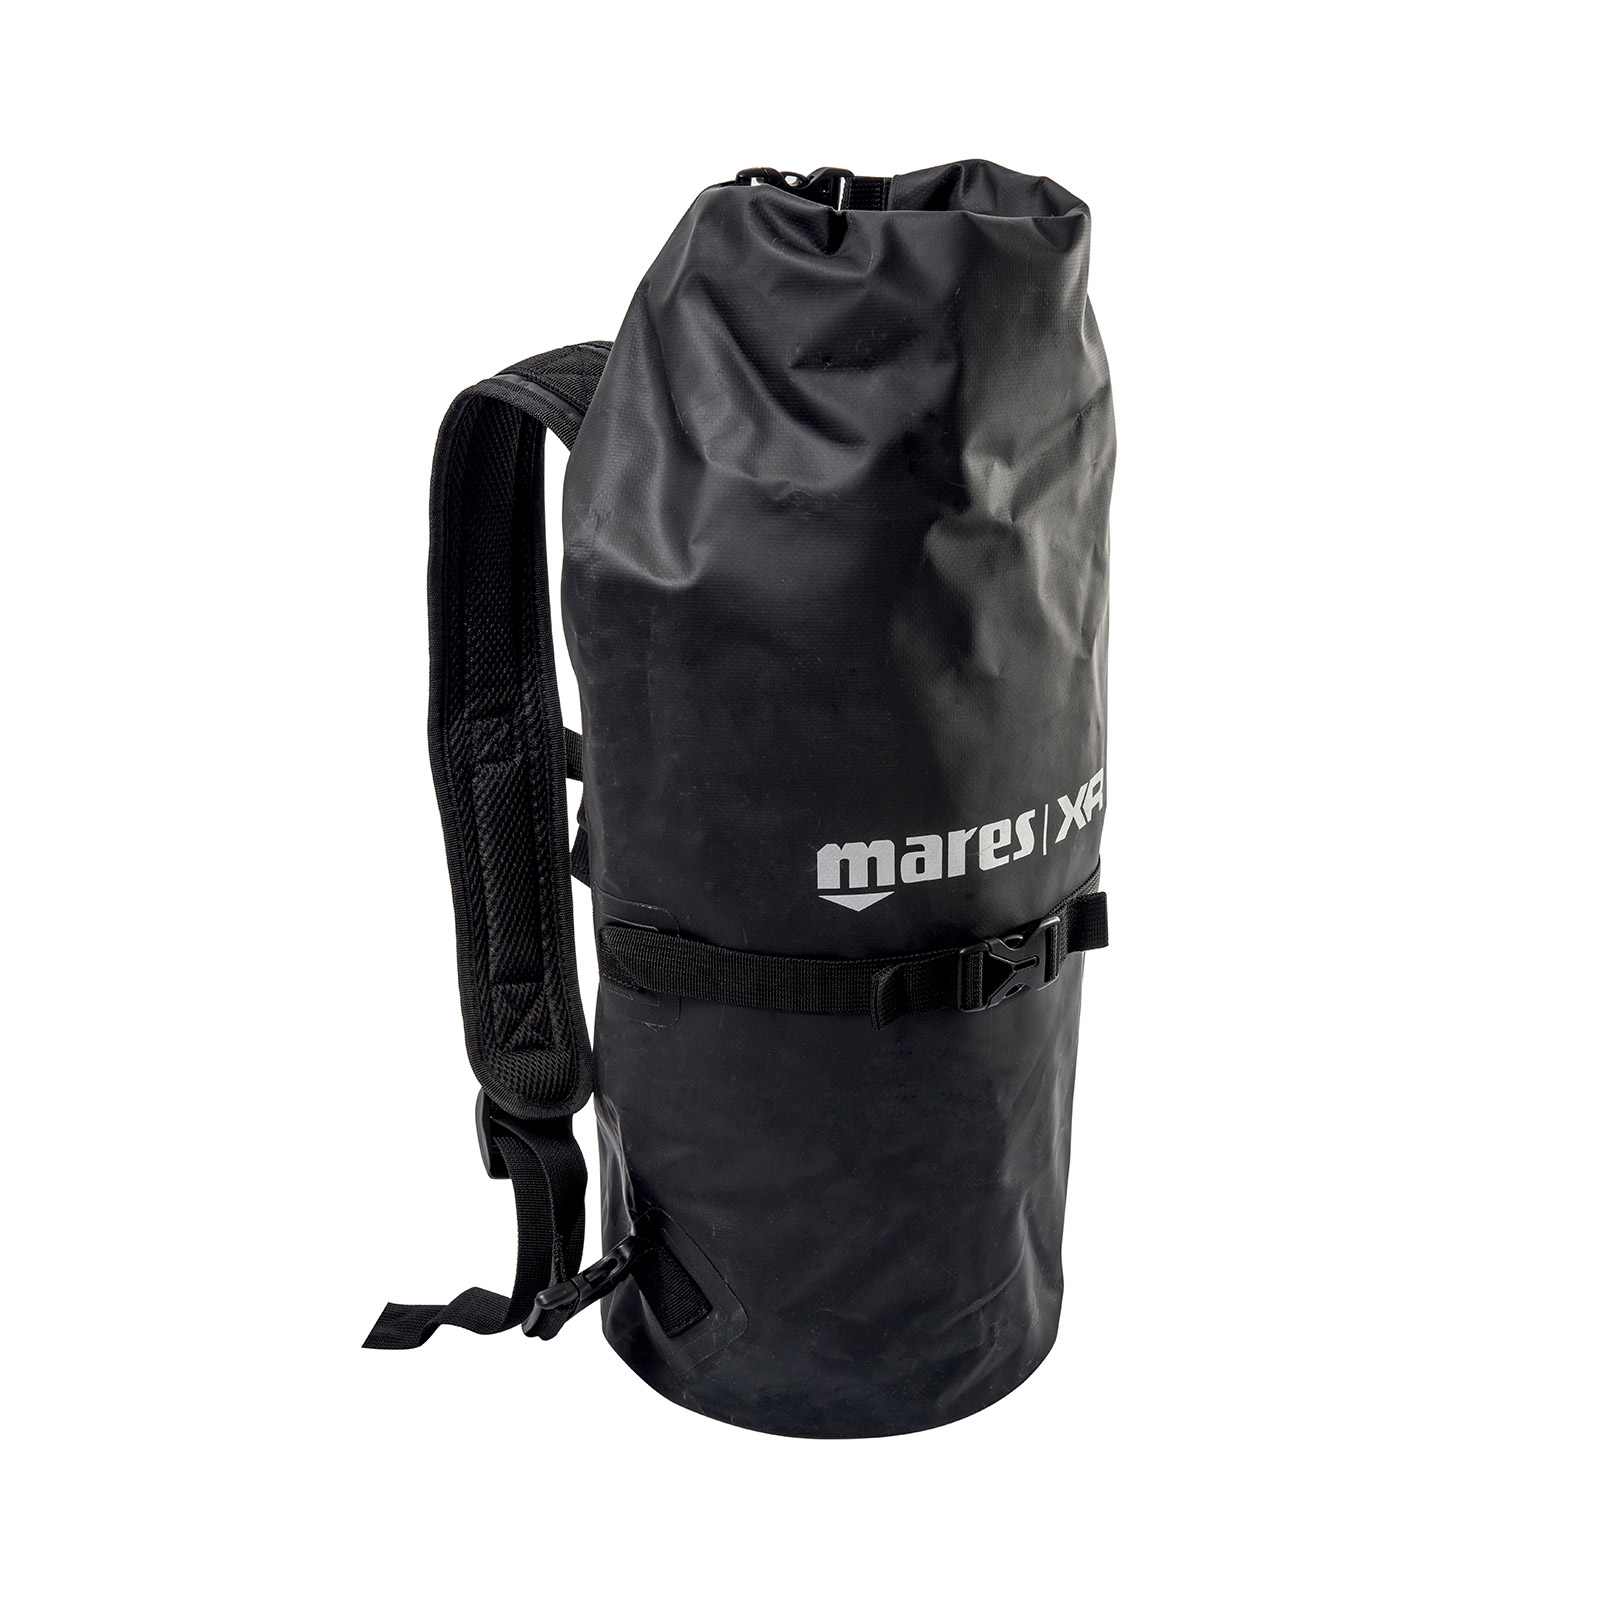 MARES XR - Expedition Dry-Bag 30Liter